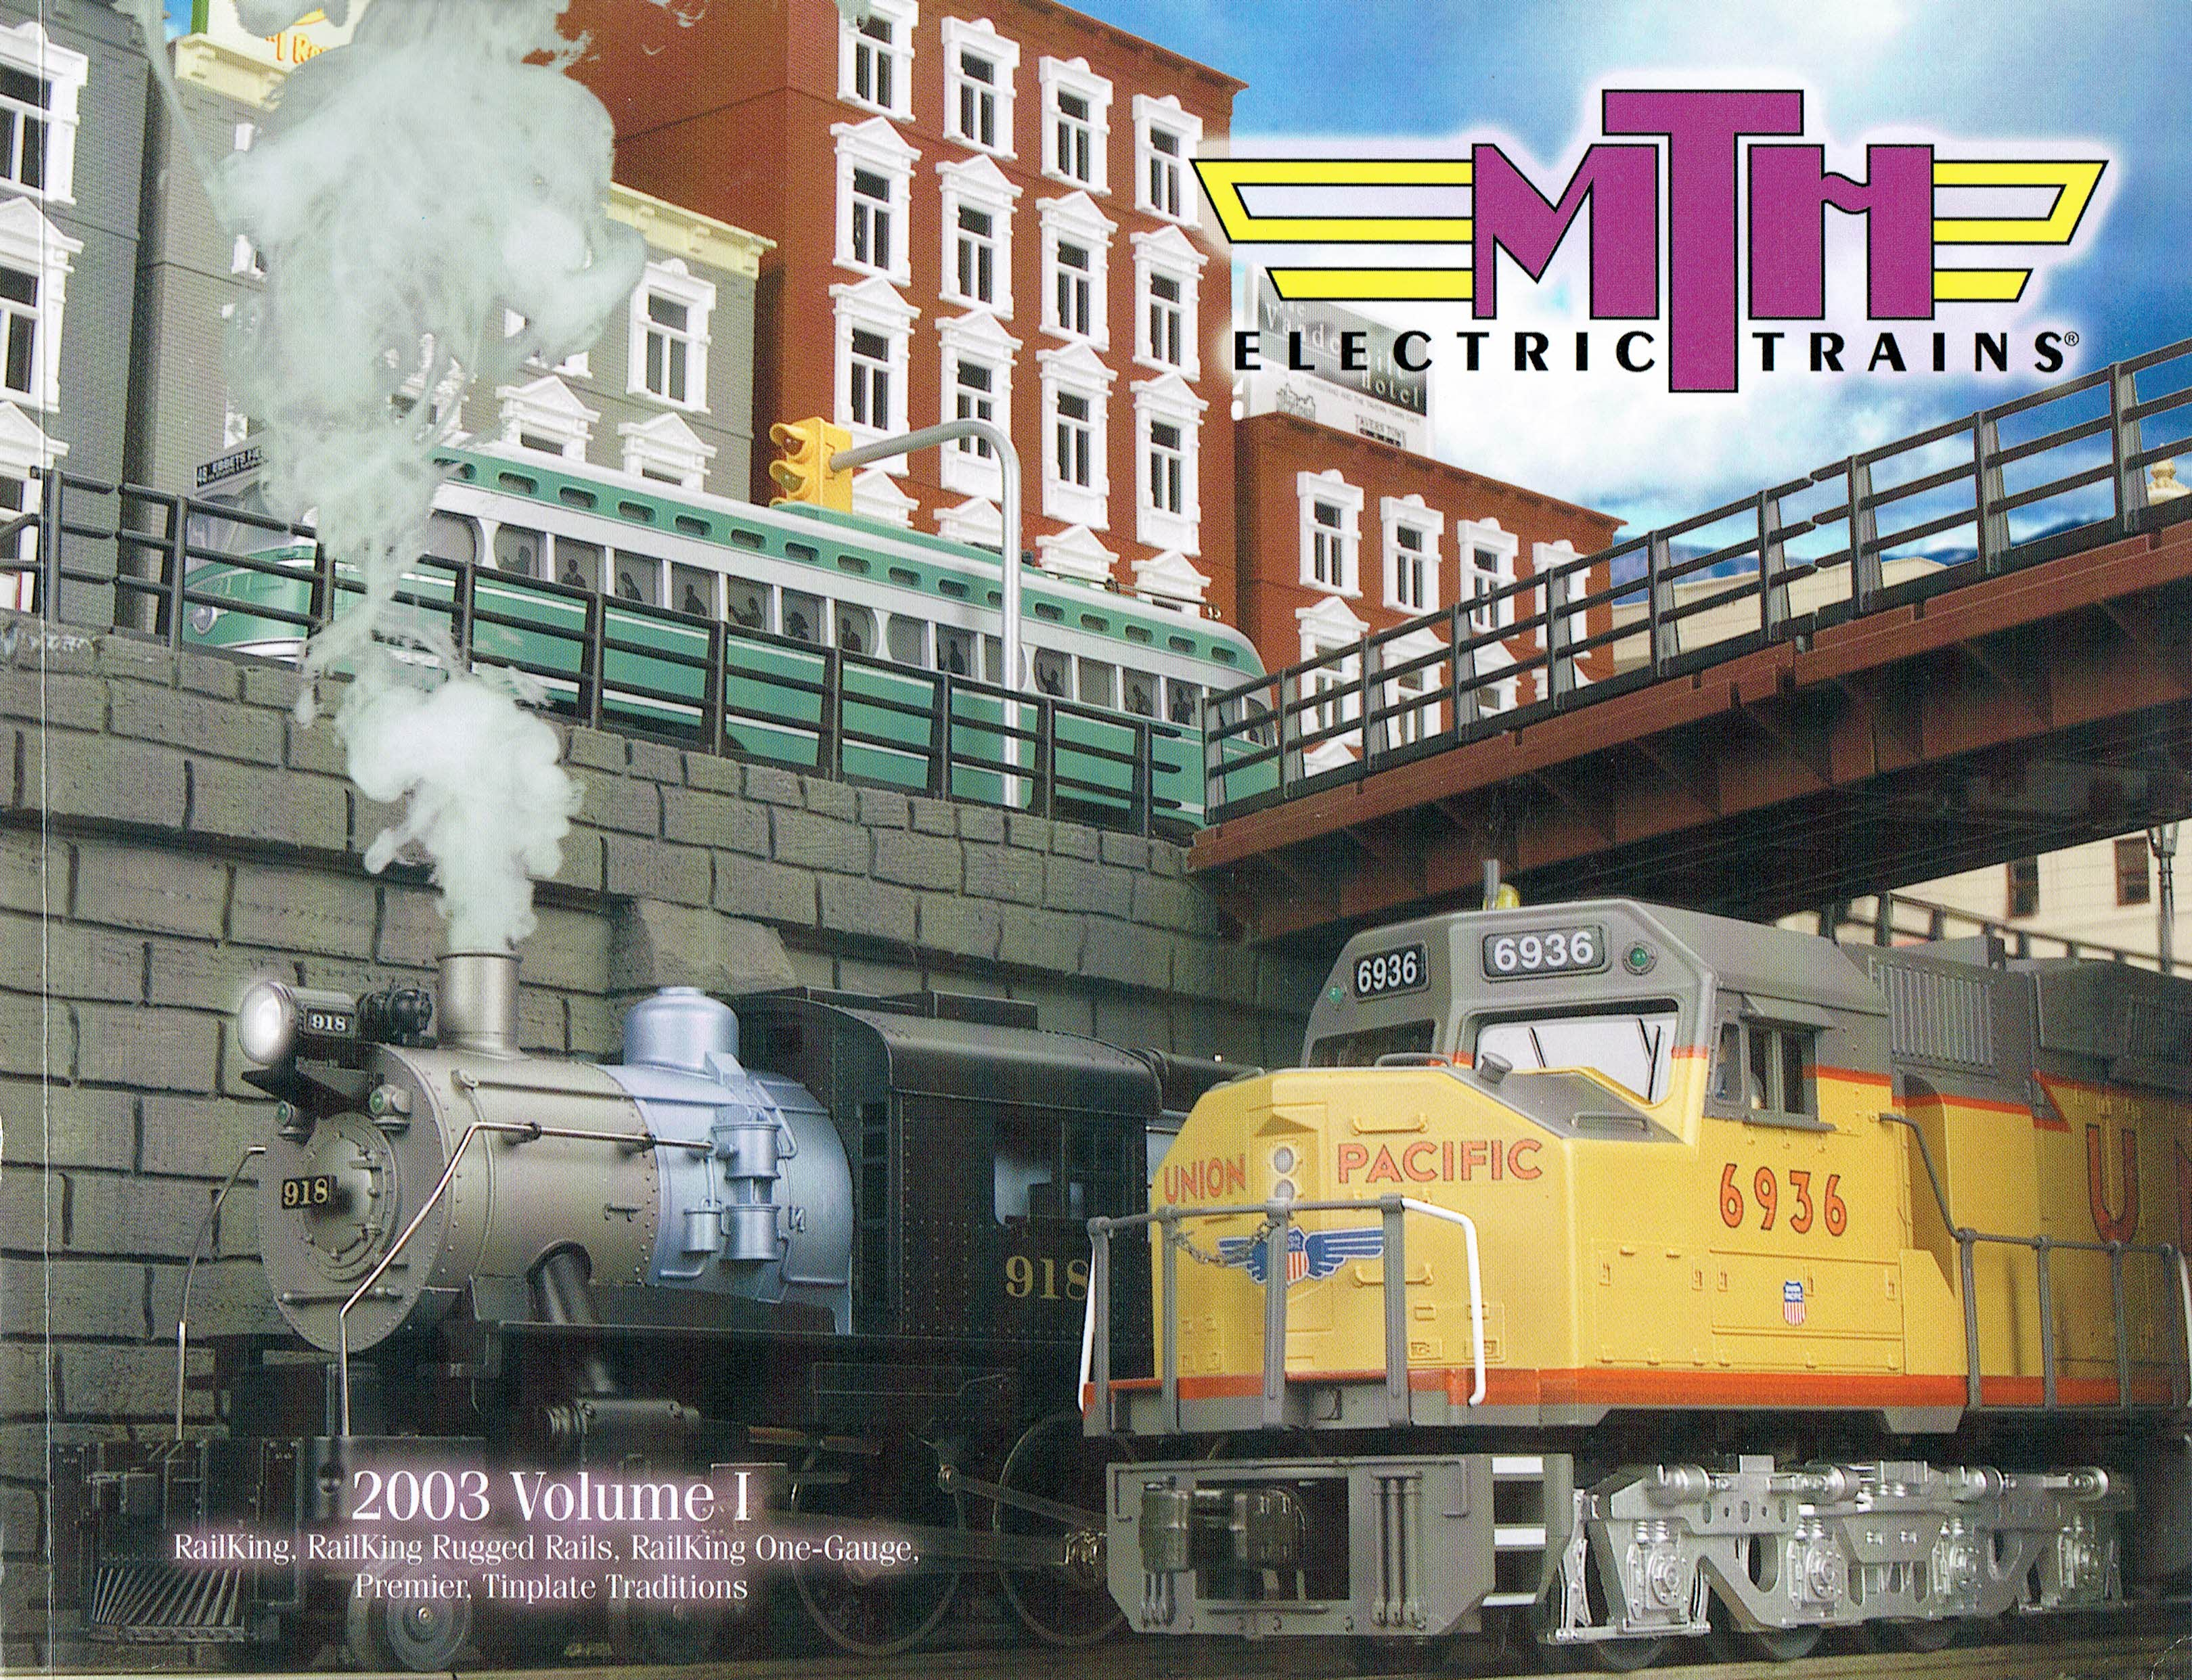 MTH 2003 Volume I Catalog image